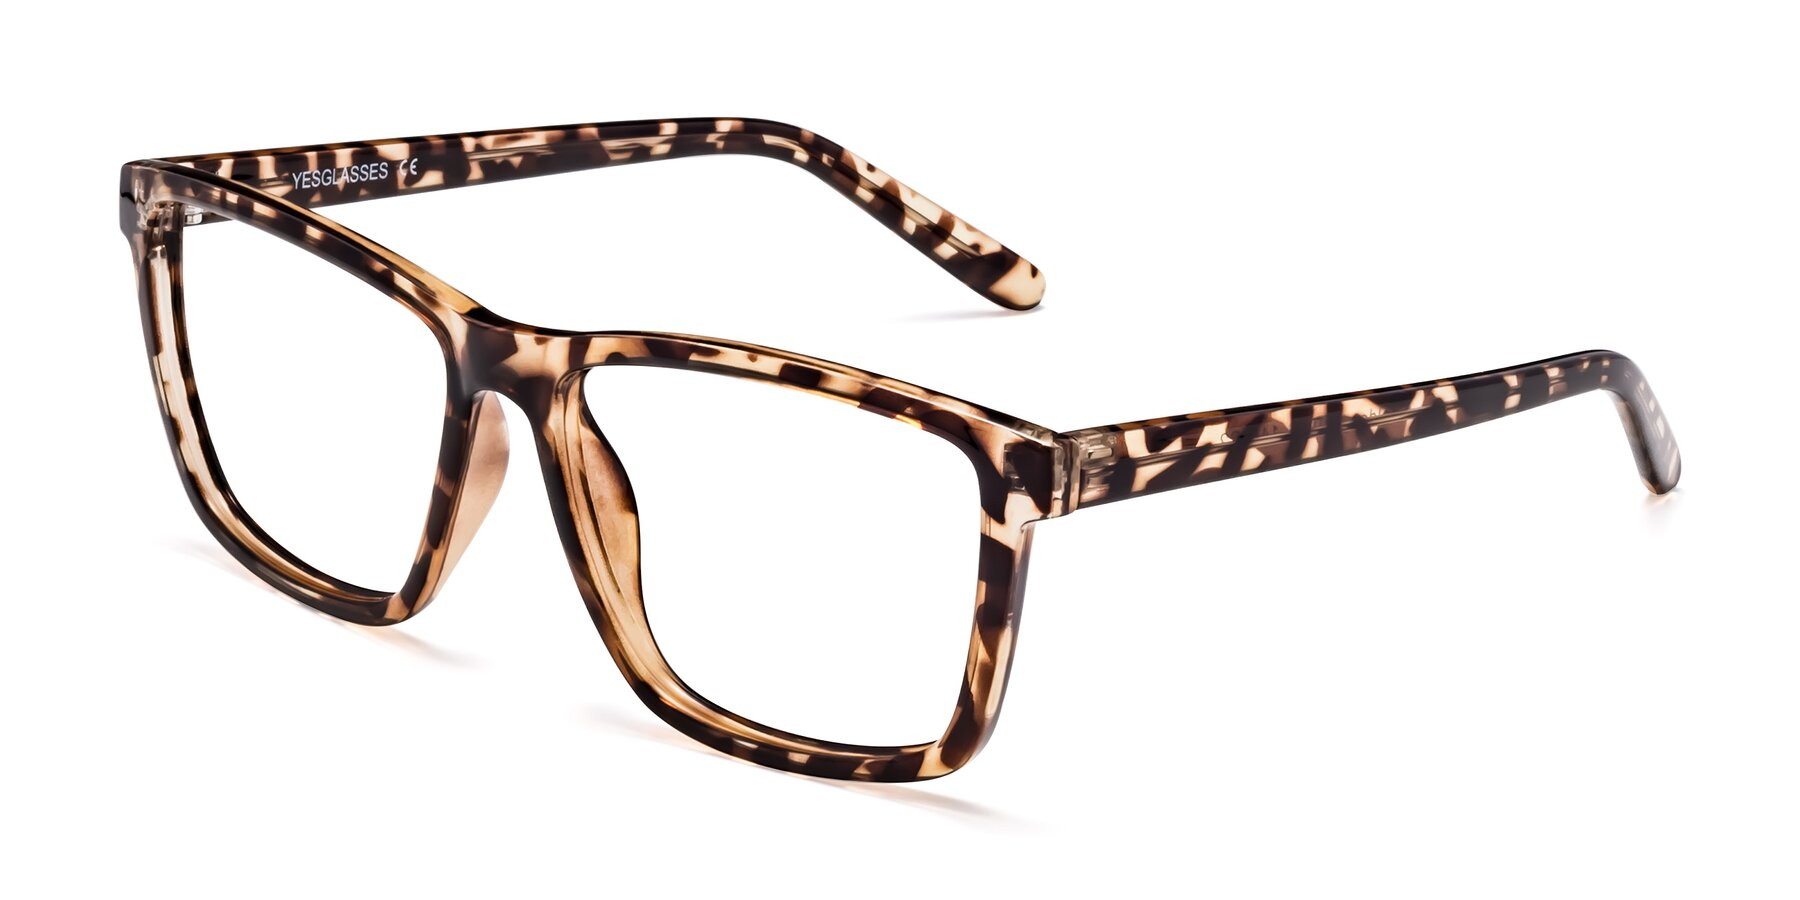 Angle of Sheldon in Tortoise with Clear Blue Light Blocking Lenses